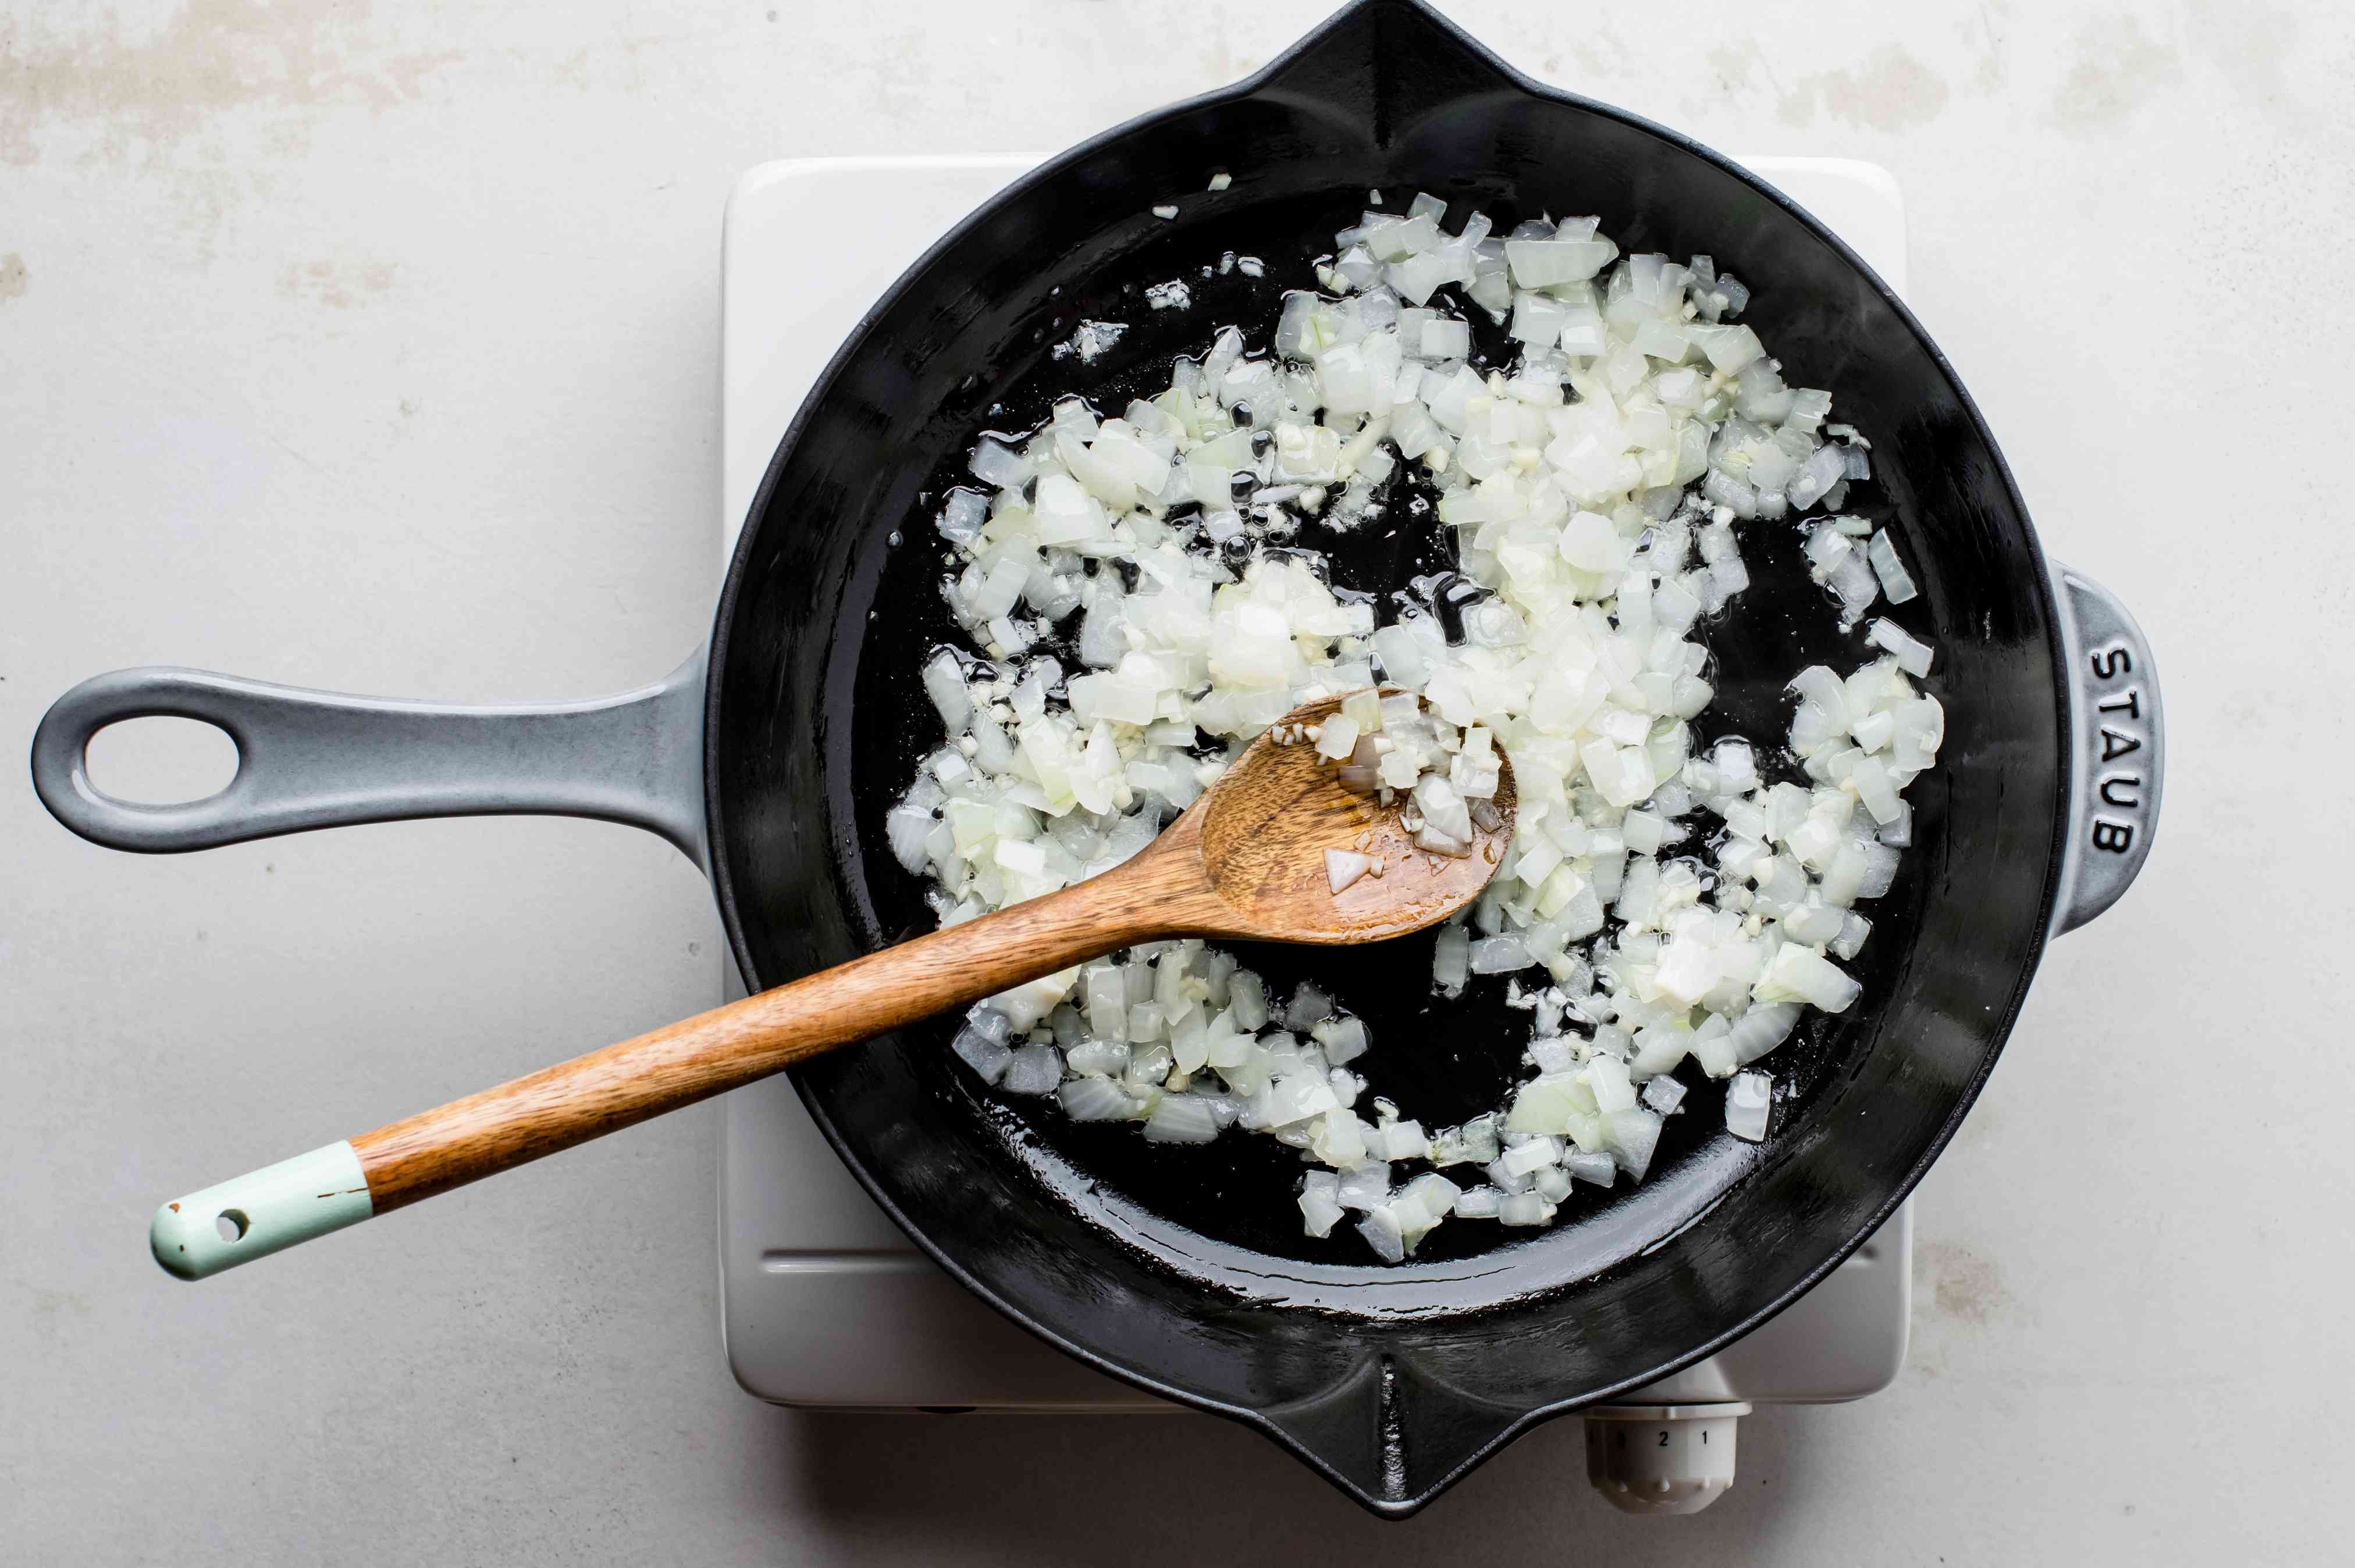 Onion and garlic are sautéed in a skillet, stirred with a wooden spoon